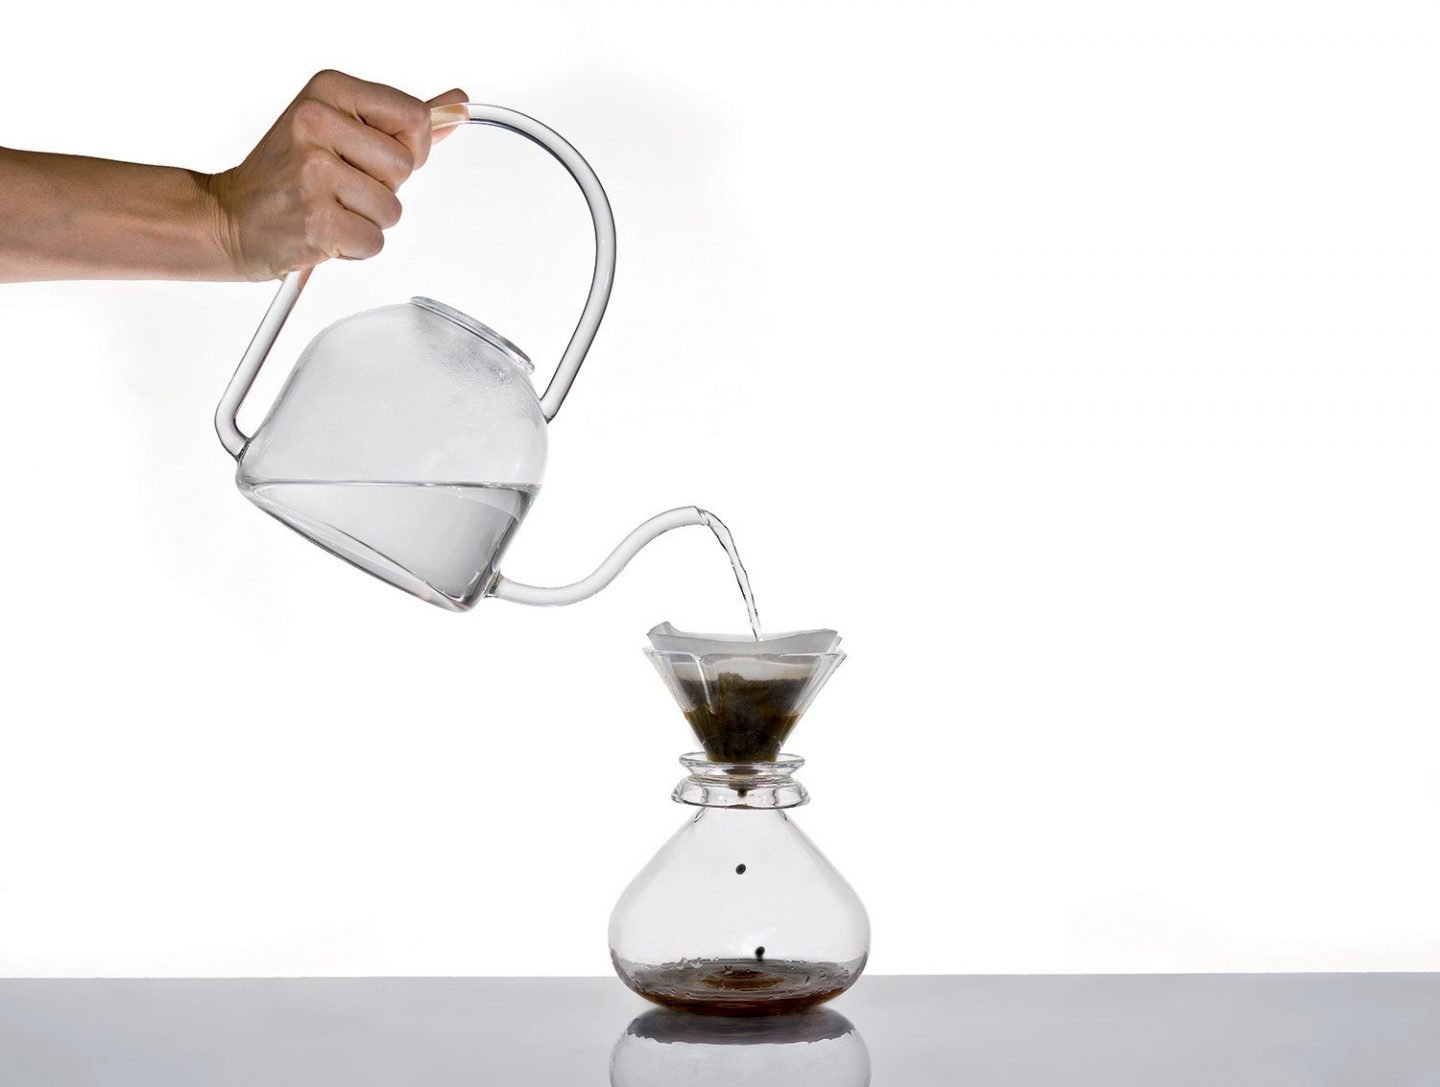 IGNANT-Design-Phil-Glass-Drip-Coffee-Maker-Set-14